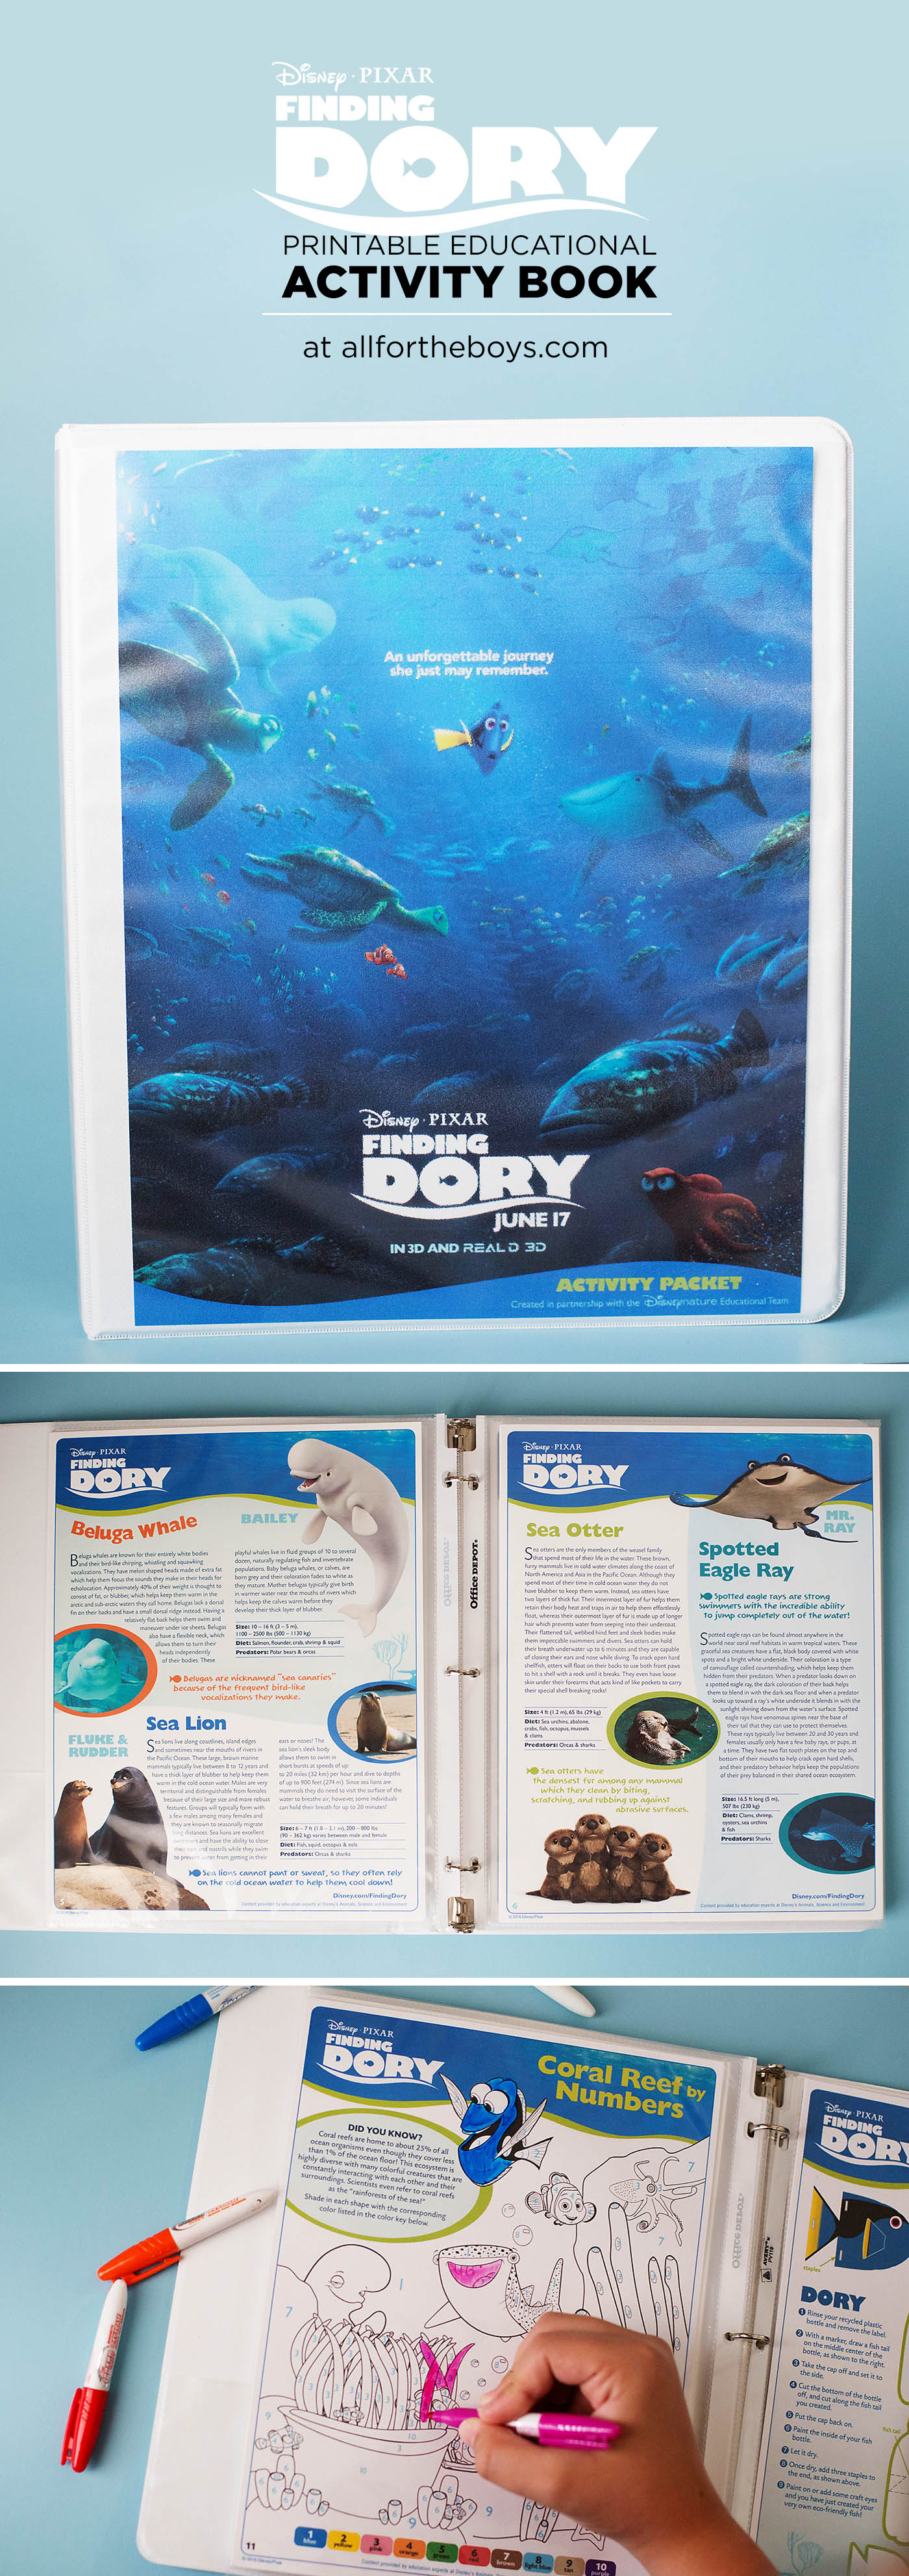 Finding Dory printable educational activity book